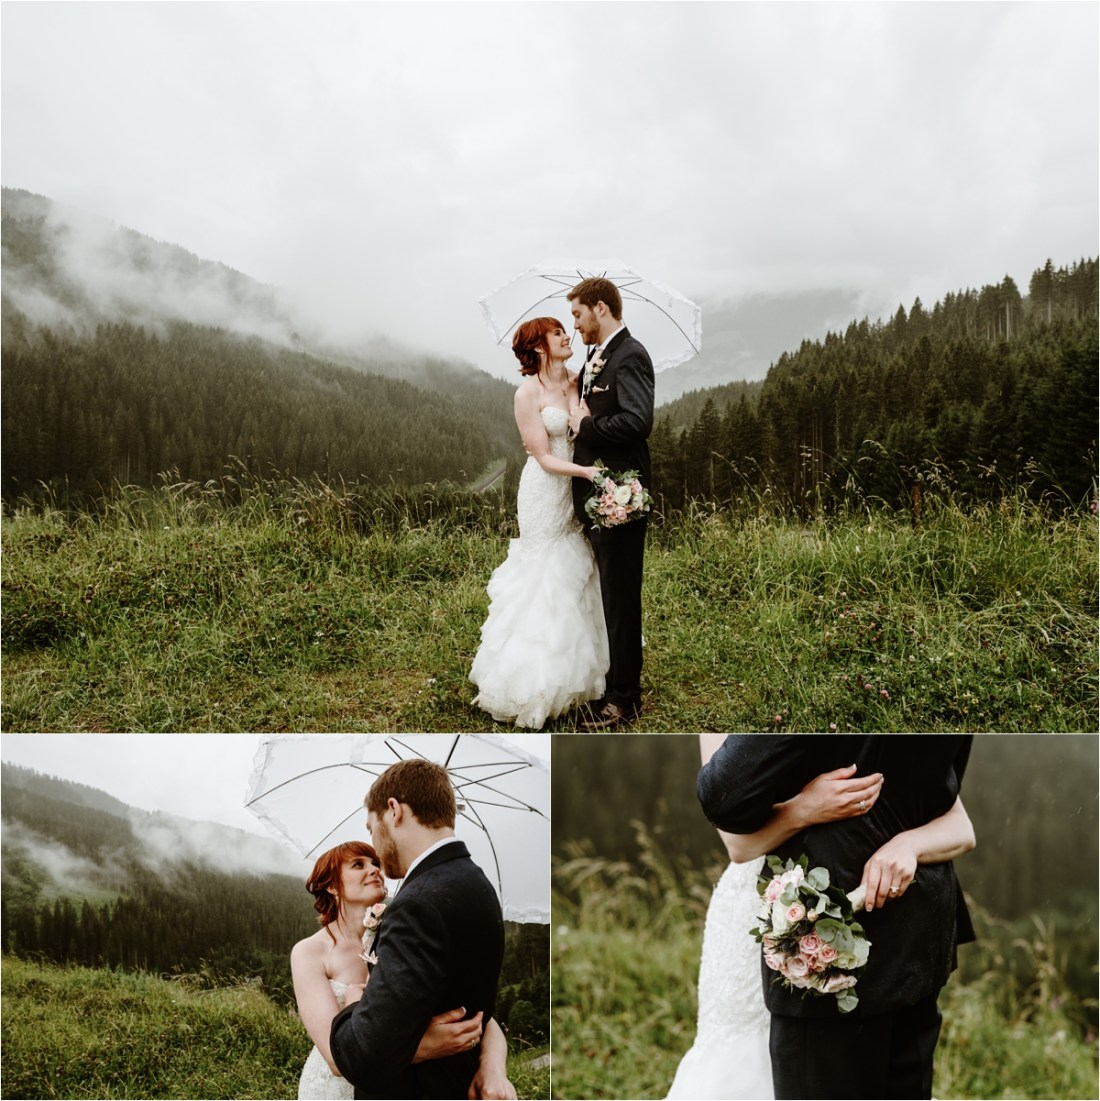 Bride & groom shelter under an umbrella in the Austrian Alps in the rain. Photos by Wild Connections Photography